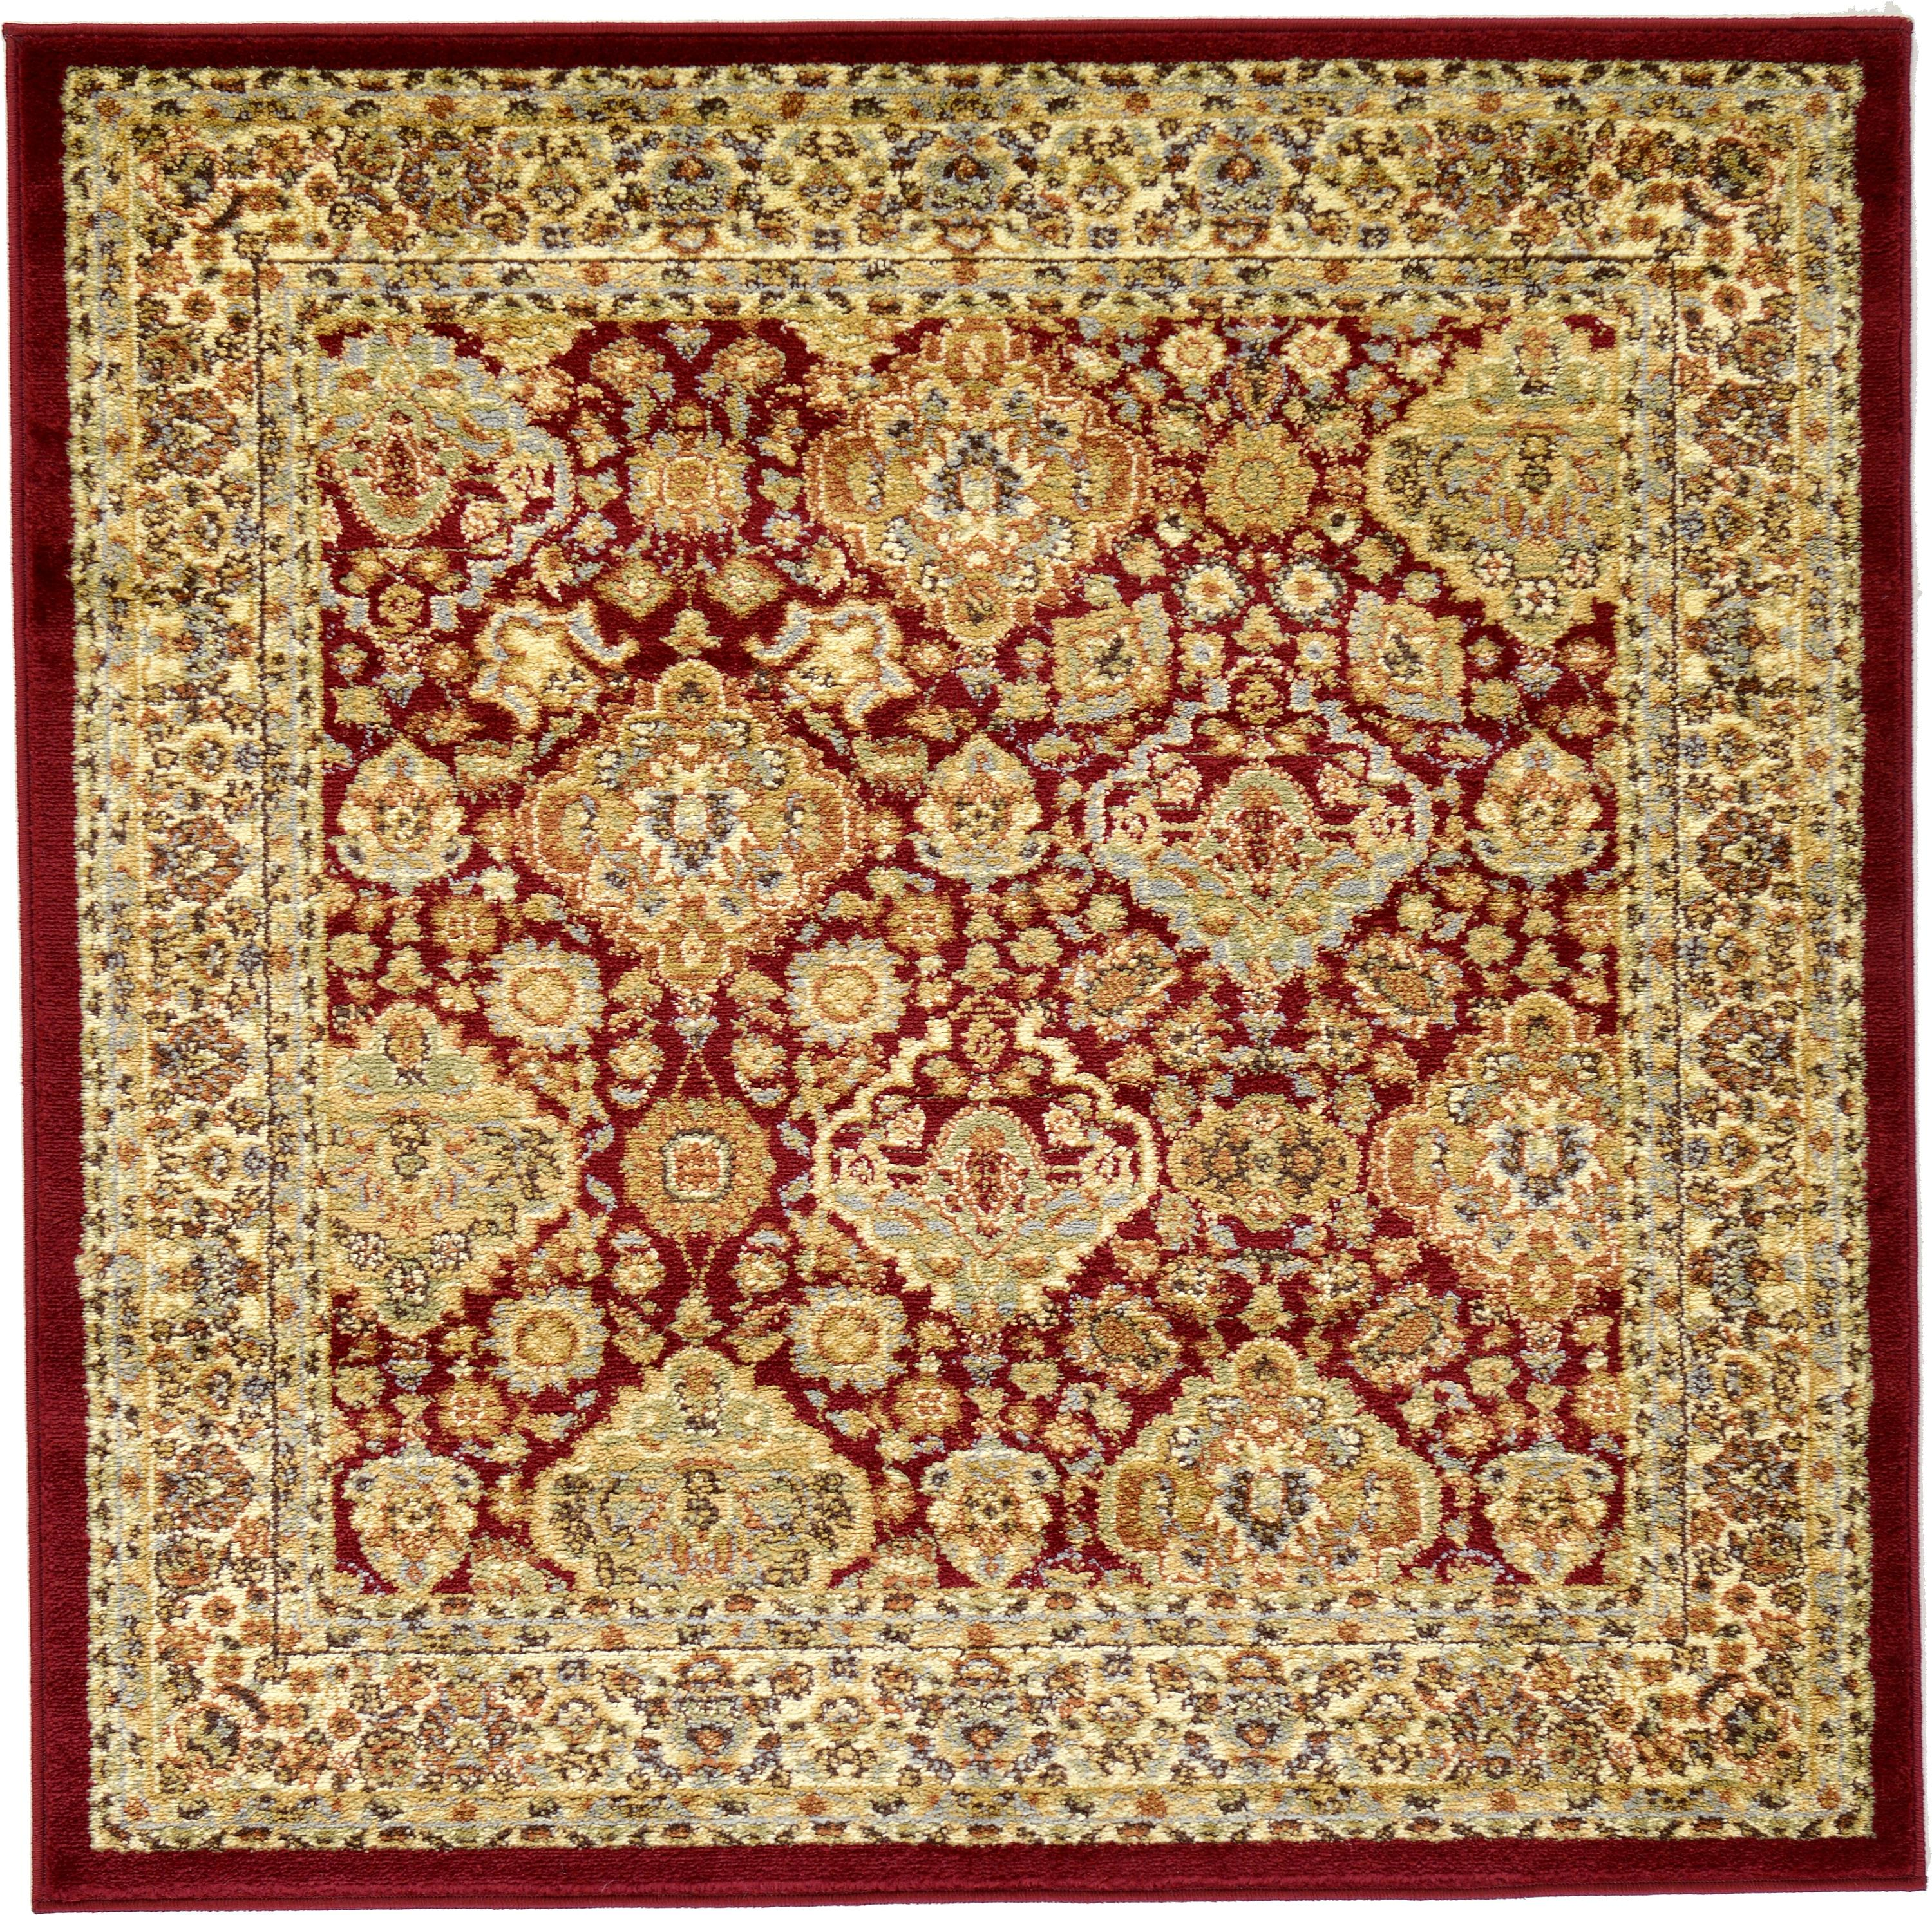 Red 4' X 4' Classic Agra Square Rug